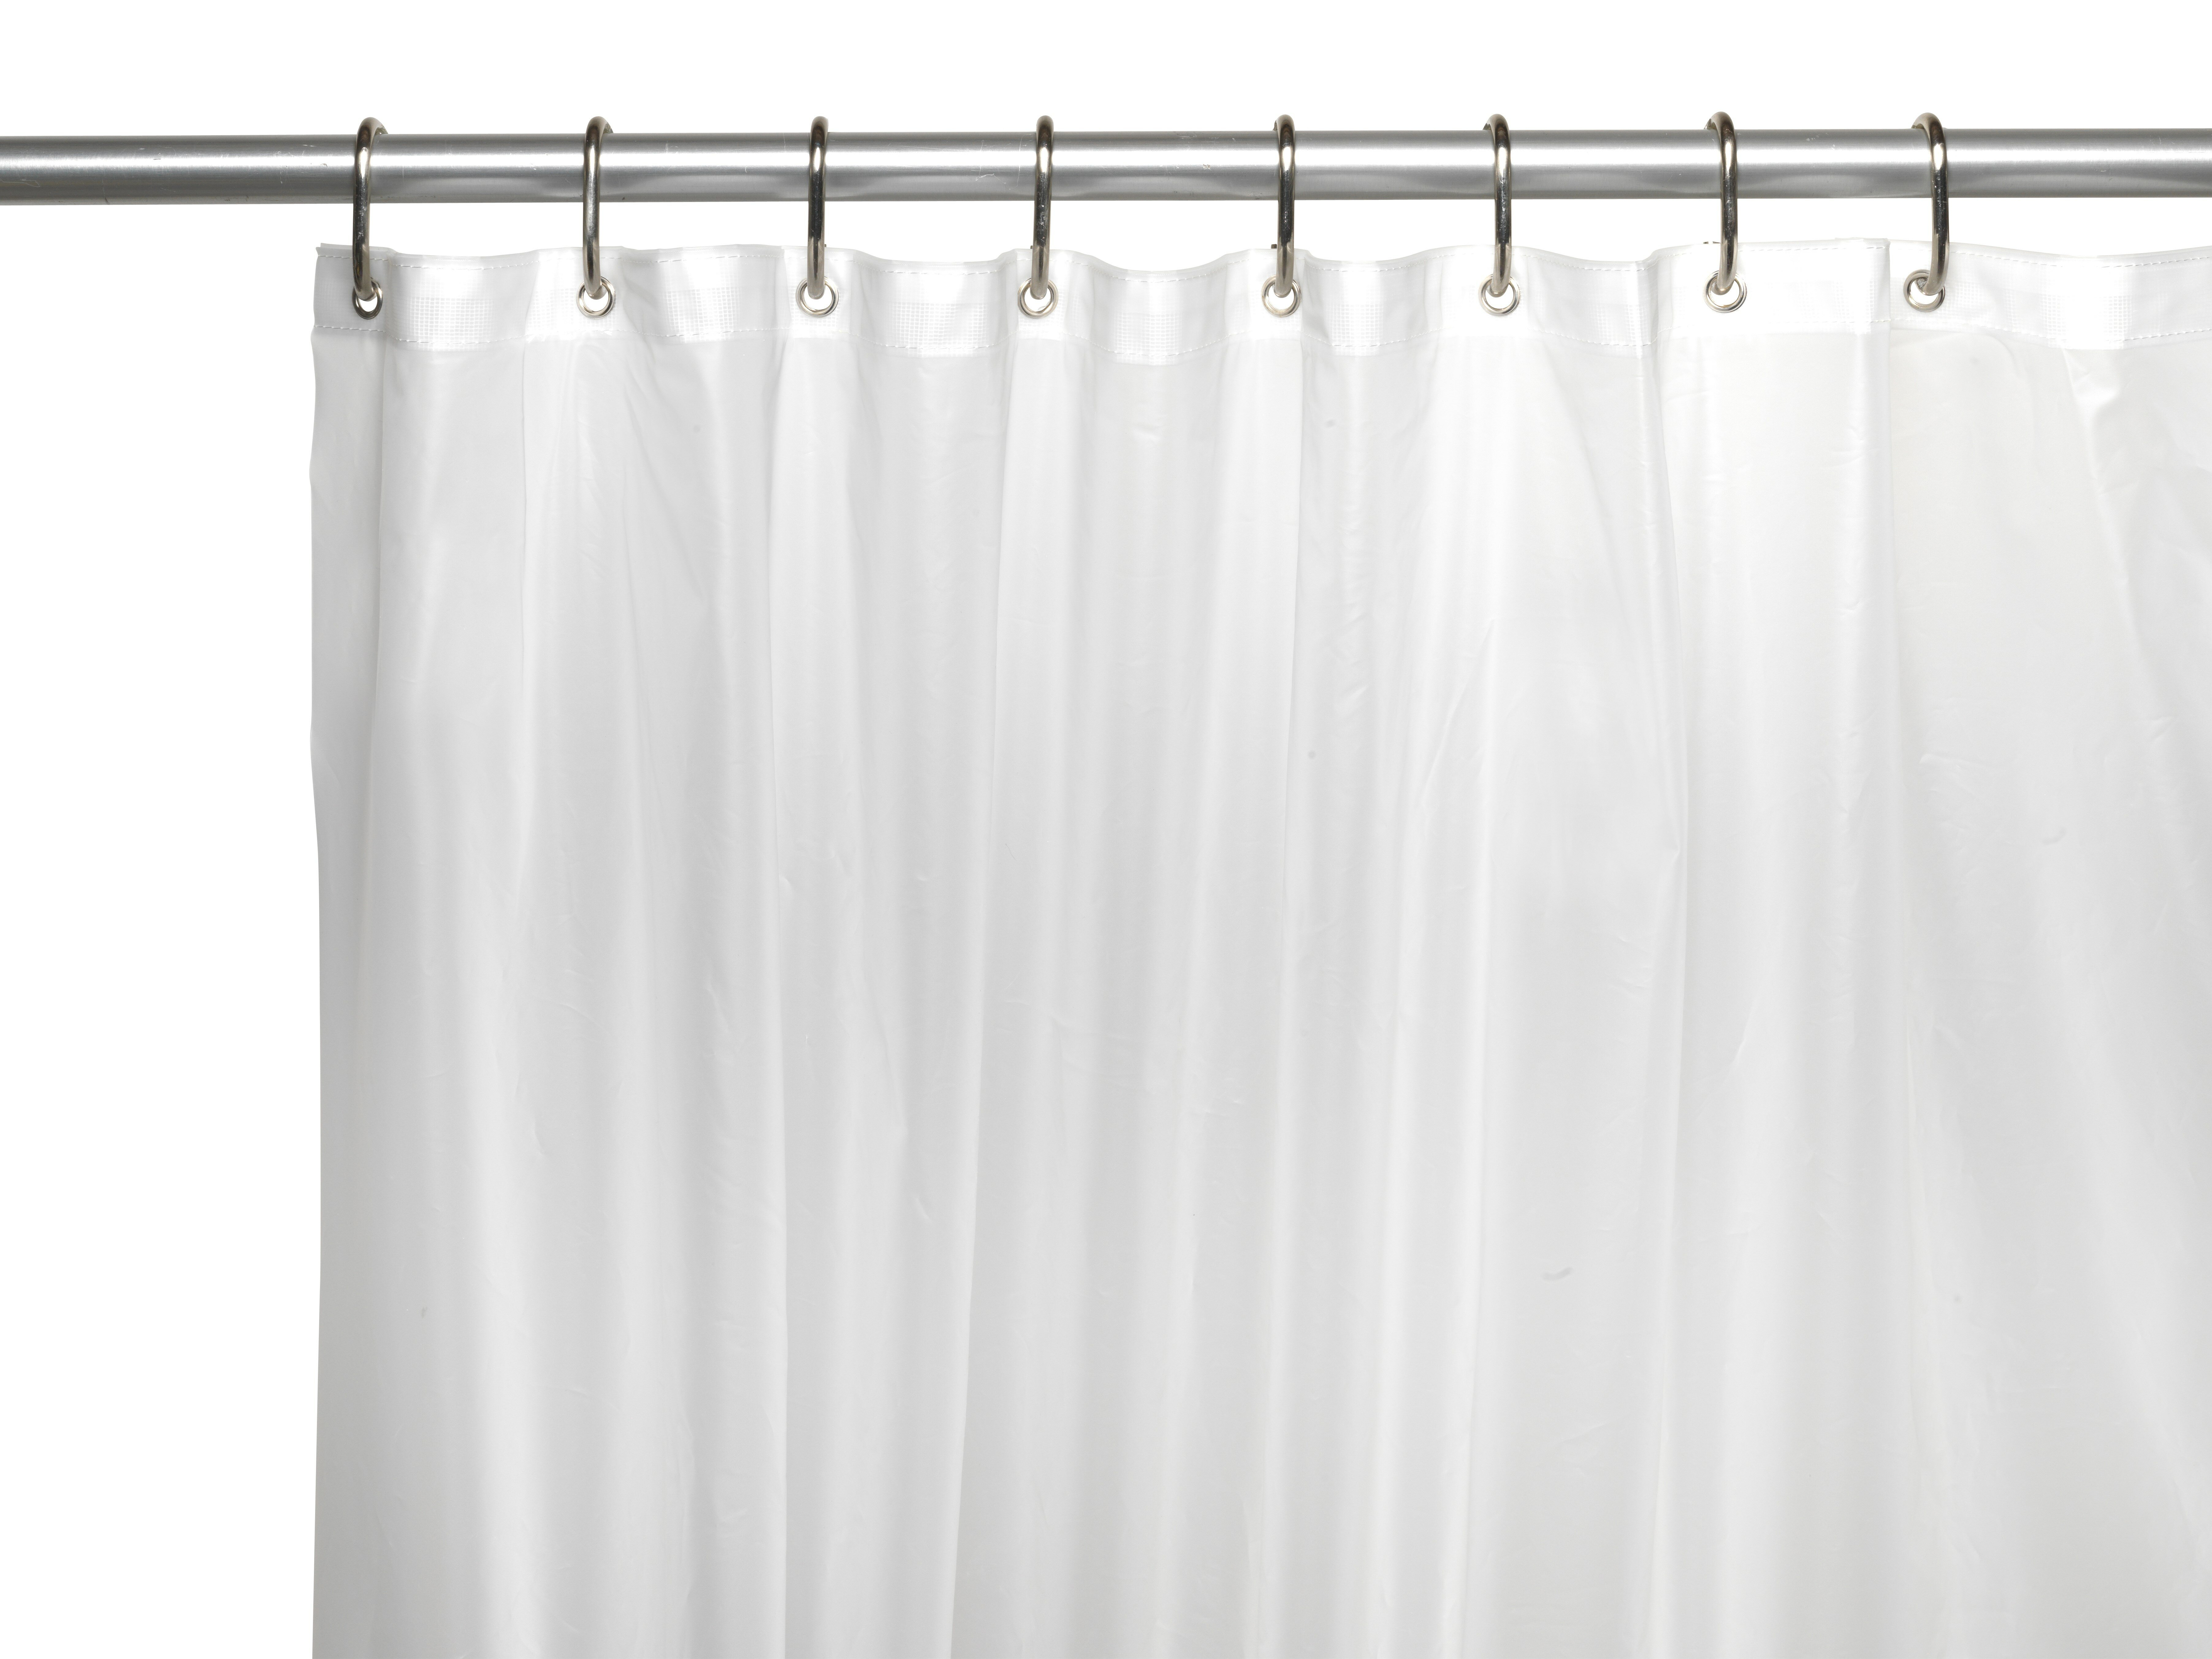 Weighted Bottom Shower Curtain Liners